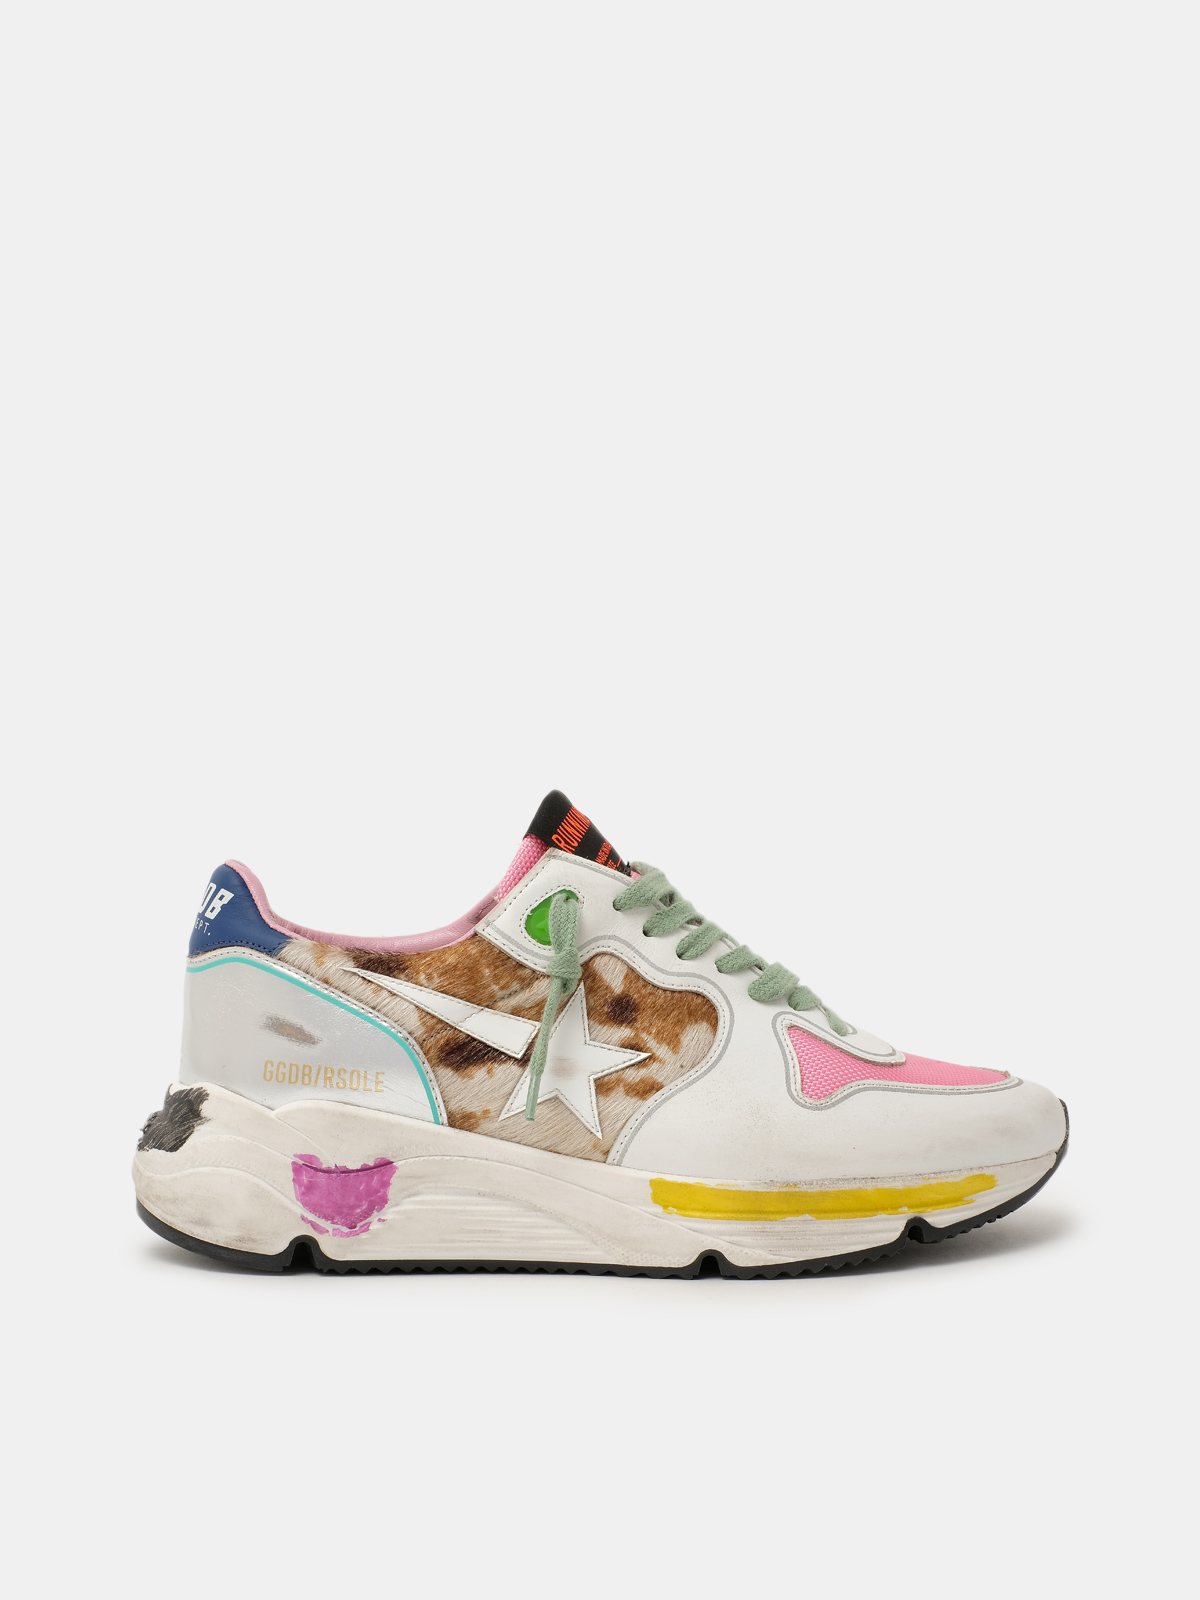 Golden Goose - Running Sole sneakers with animal-print insert in